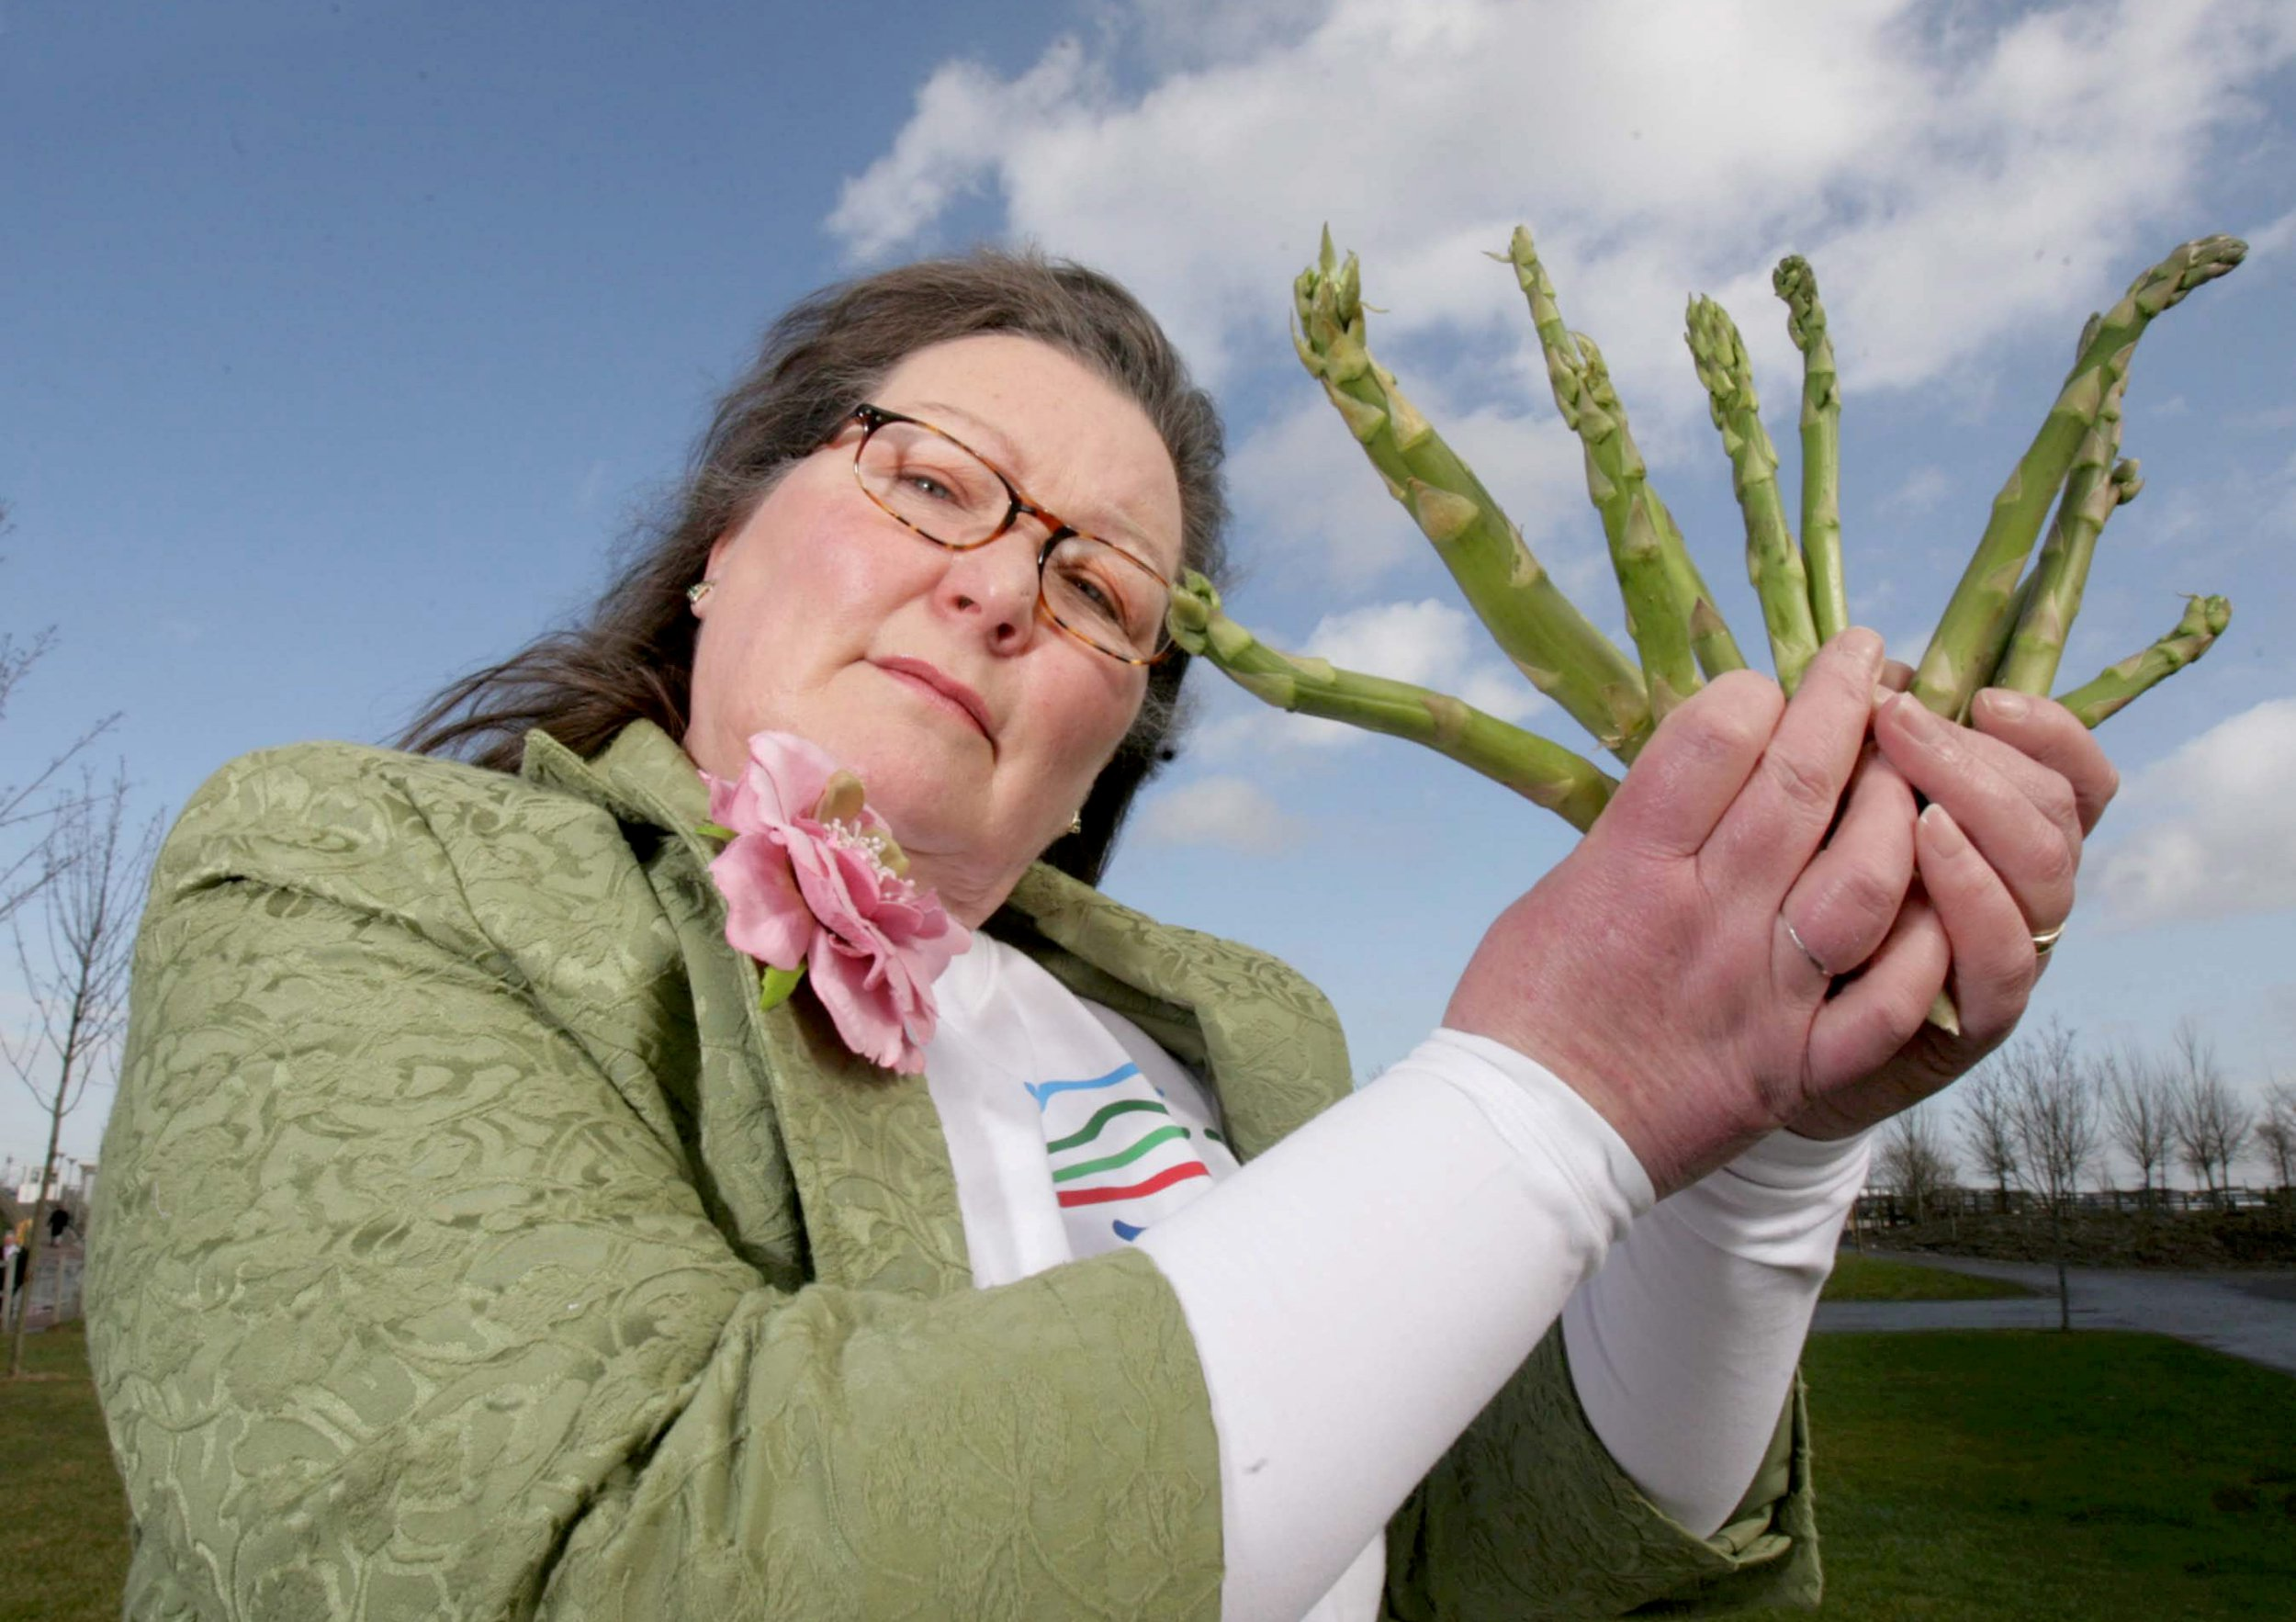 Jemima Packington, Britain?s only fortune teller to uses asparagus to see into the future. (file photo) See SWNS story SWMDtips; A fortune teller who correctly predicted Brexit using ASPARAGUS has revealed her top tips for 2019 ? including a global recession. Jemima Packington, 61, is the world's only Asparamancer and claims she can peer into the future by tossing the veg in the air and interpreting how the spears land. She predicts that 2019 will see the extreme temperature will become a norm and well-known British businesses will fold. She also thinks there will be exciting new technology and fears over Brexit will be largely unfounded.